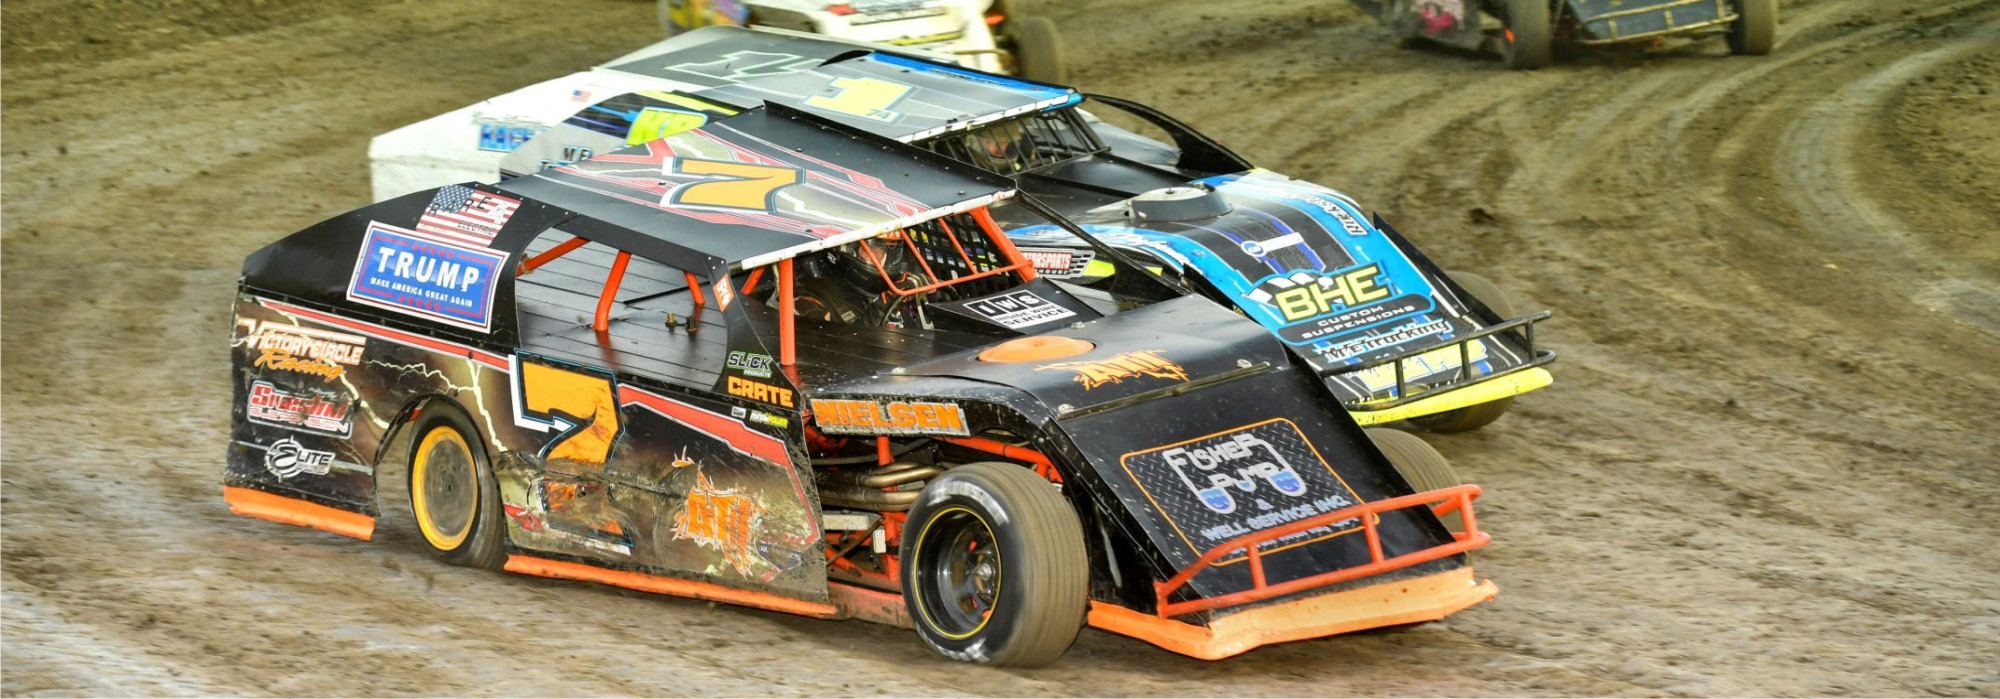 MODIFIEDS, SPORTMODS, AMERICAN STOCKS, MOD LITES, HARD TOPS